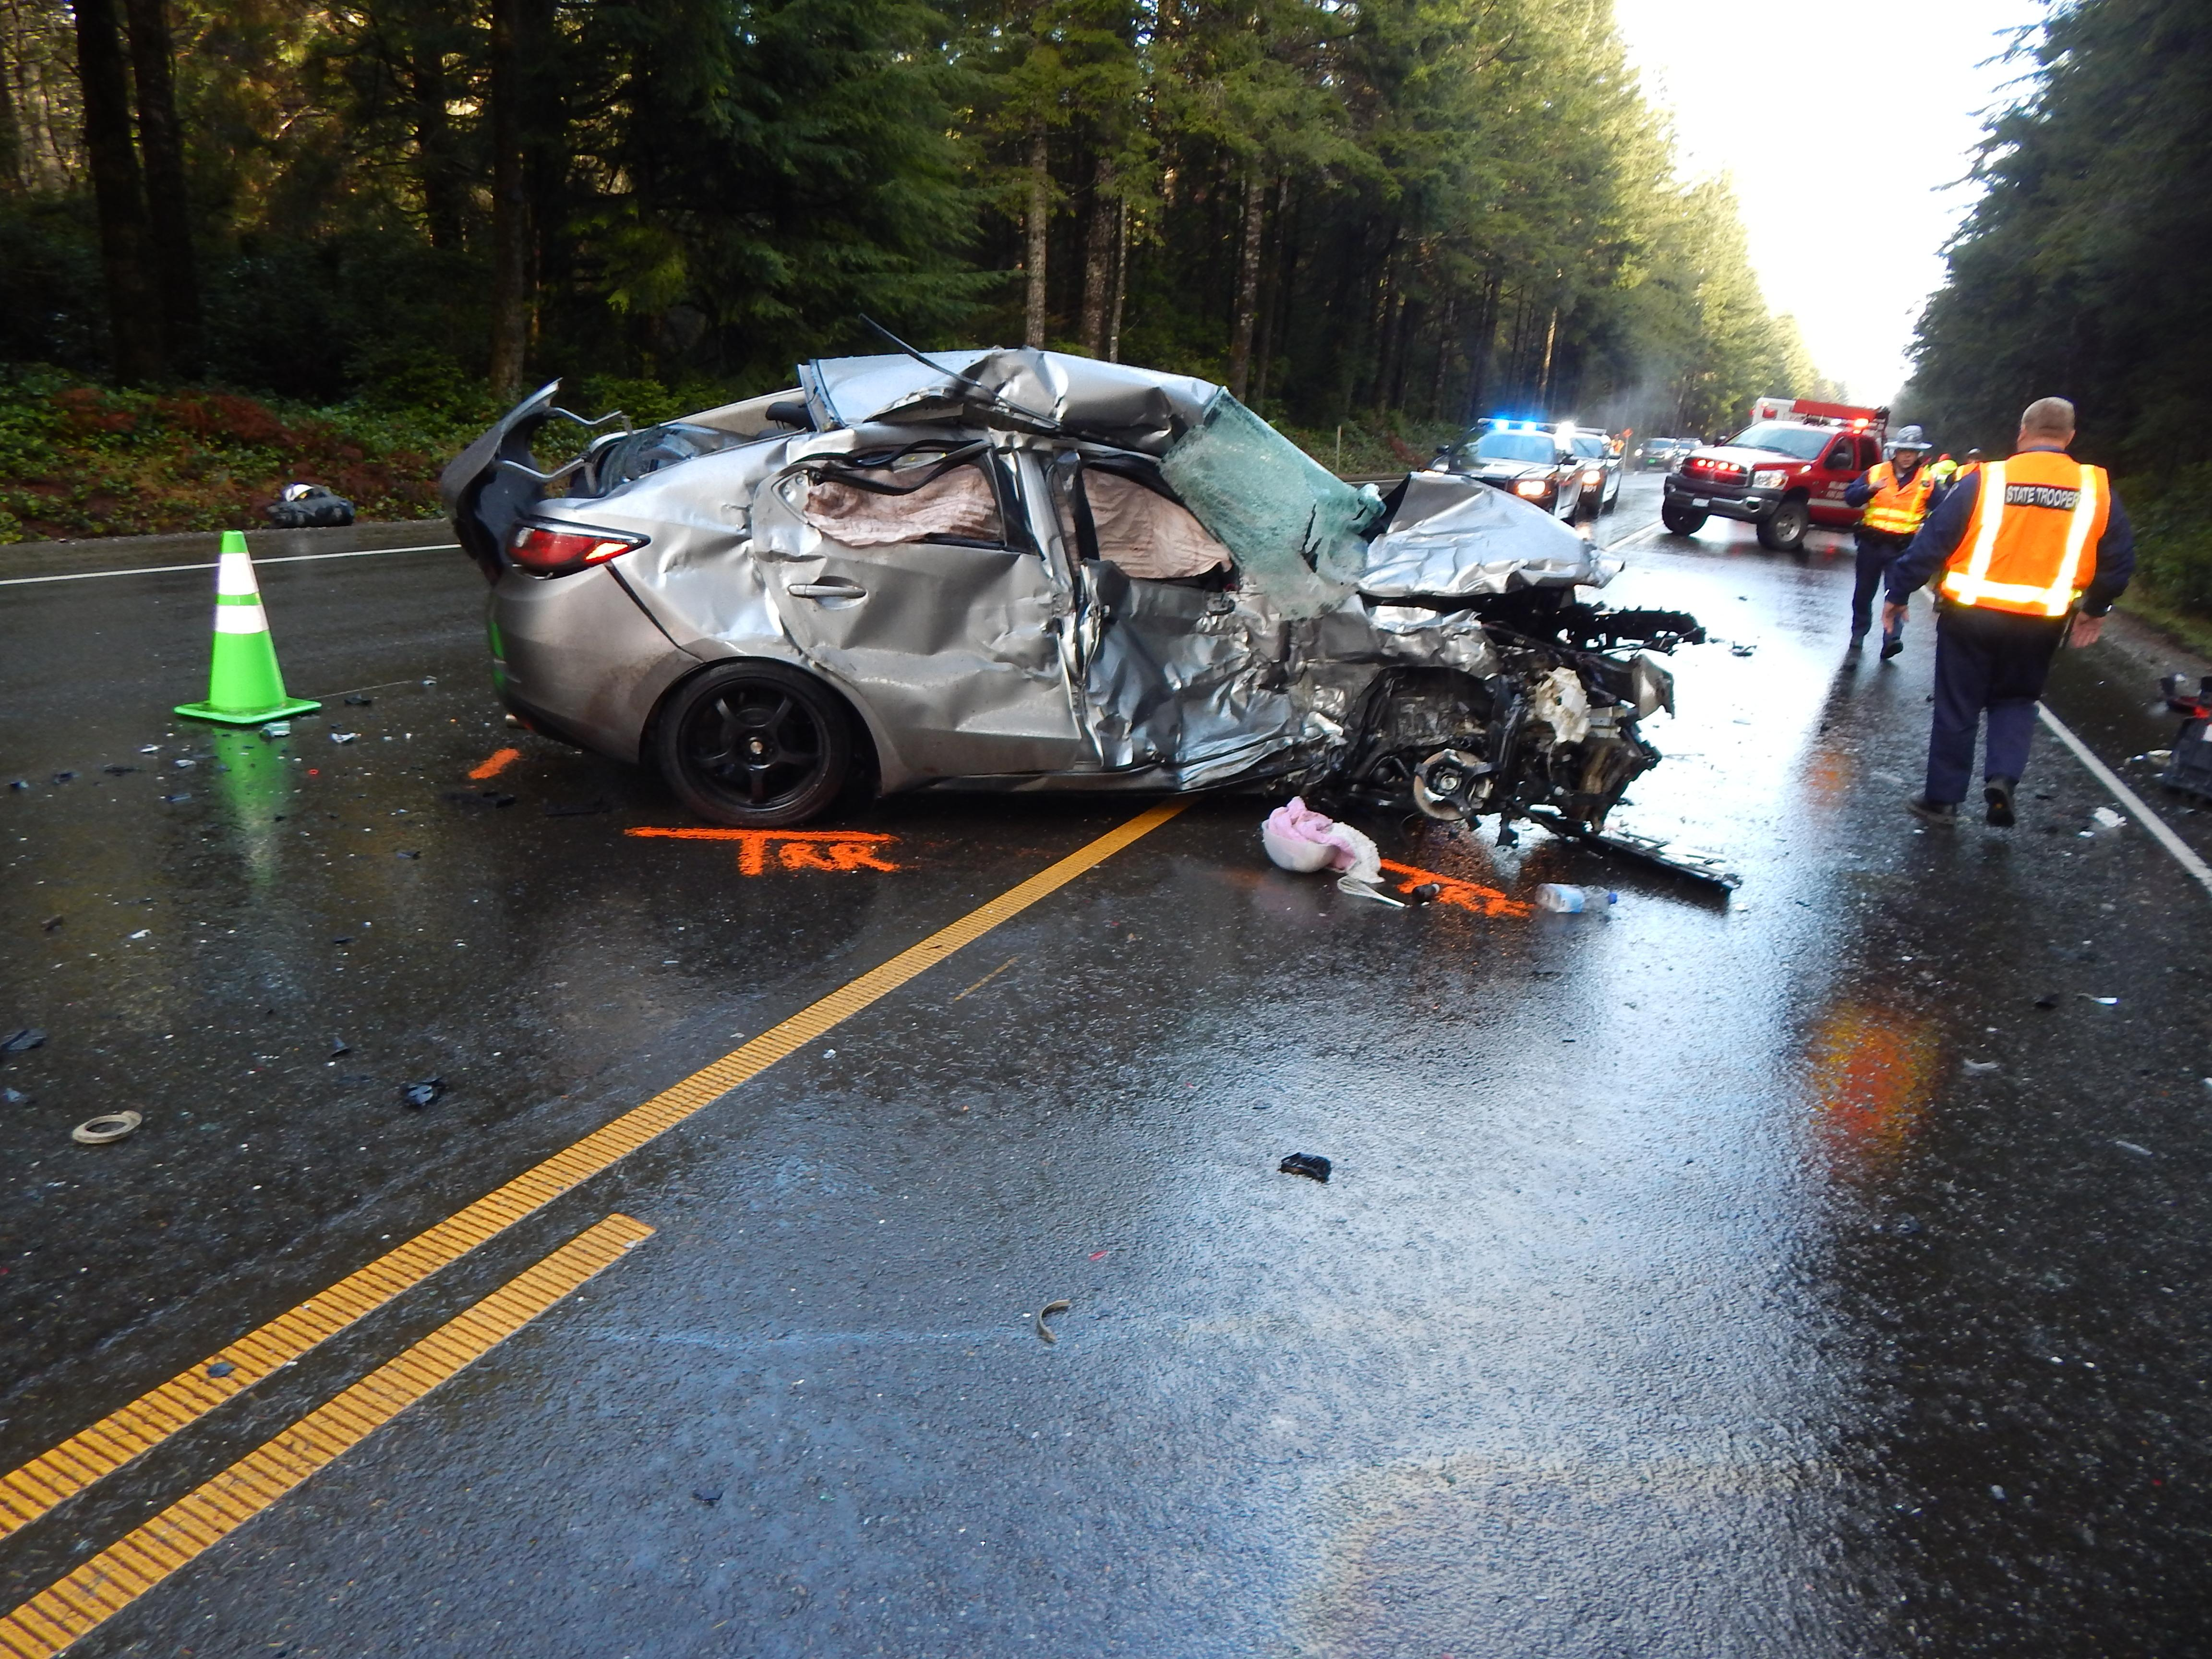 <p>A 25-year-old woman died when she lost control of her car on Highway 101 during a hail storm and crashed into an oncoming SUV Wednesday morning, Oregon State Police said.</p><p>Vanessa Goodwin of North Bend died from her injuries, police said. (OSP)</p>